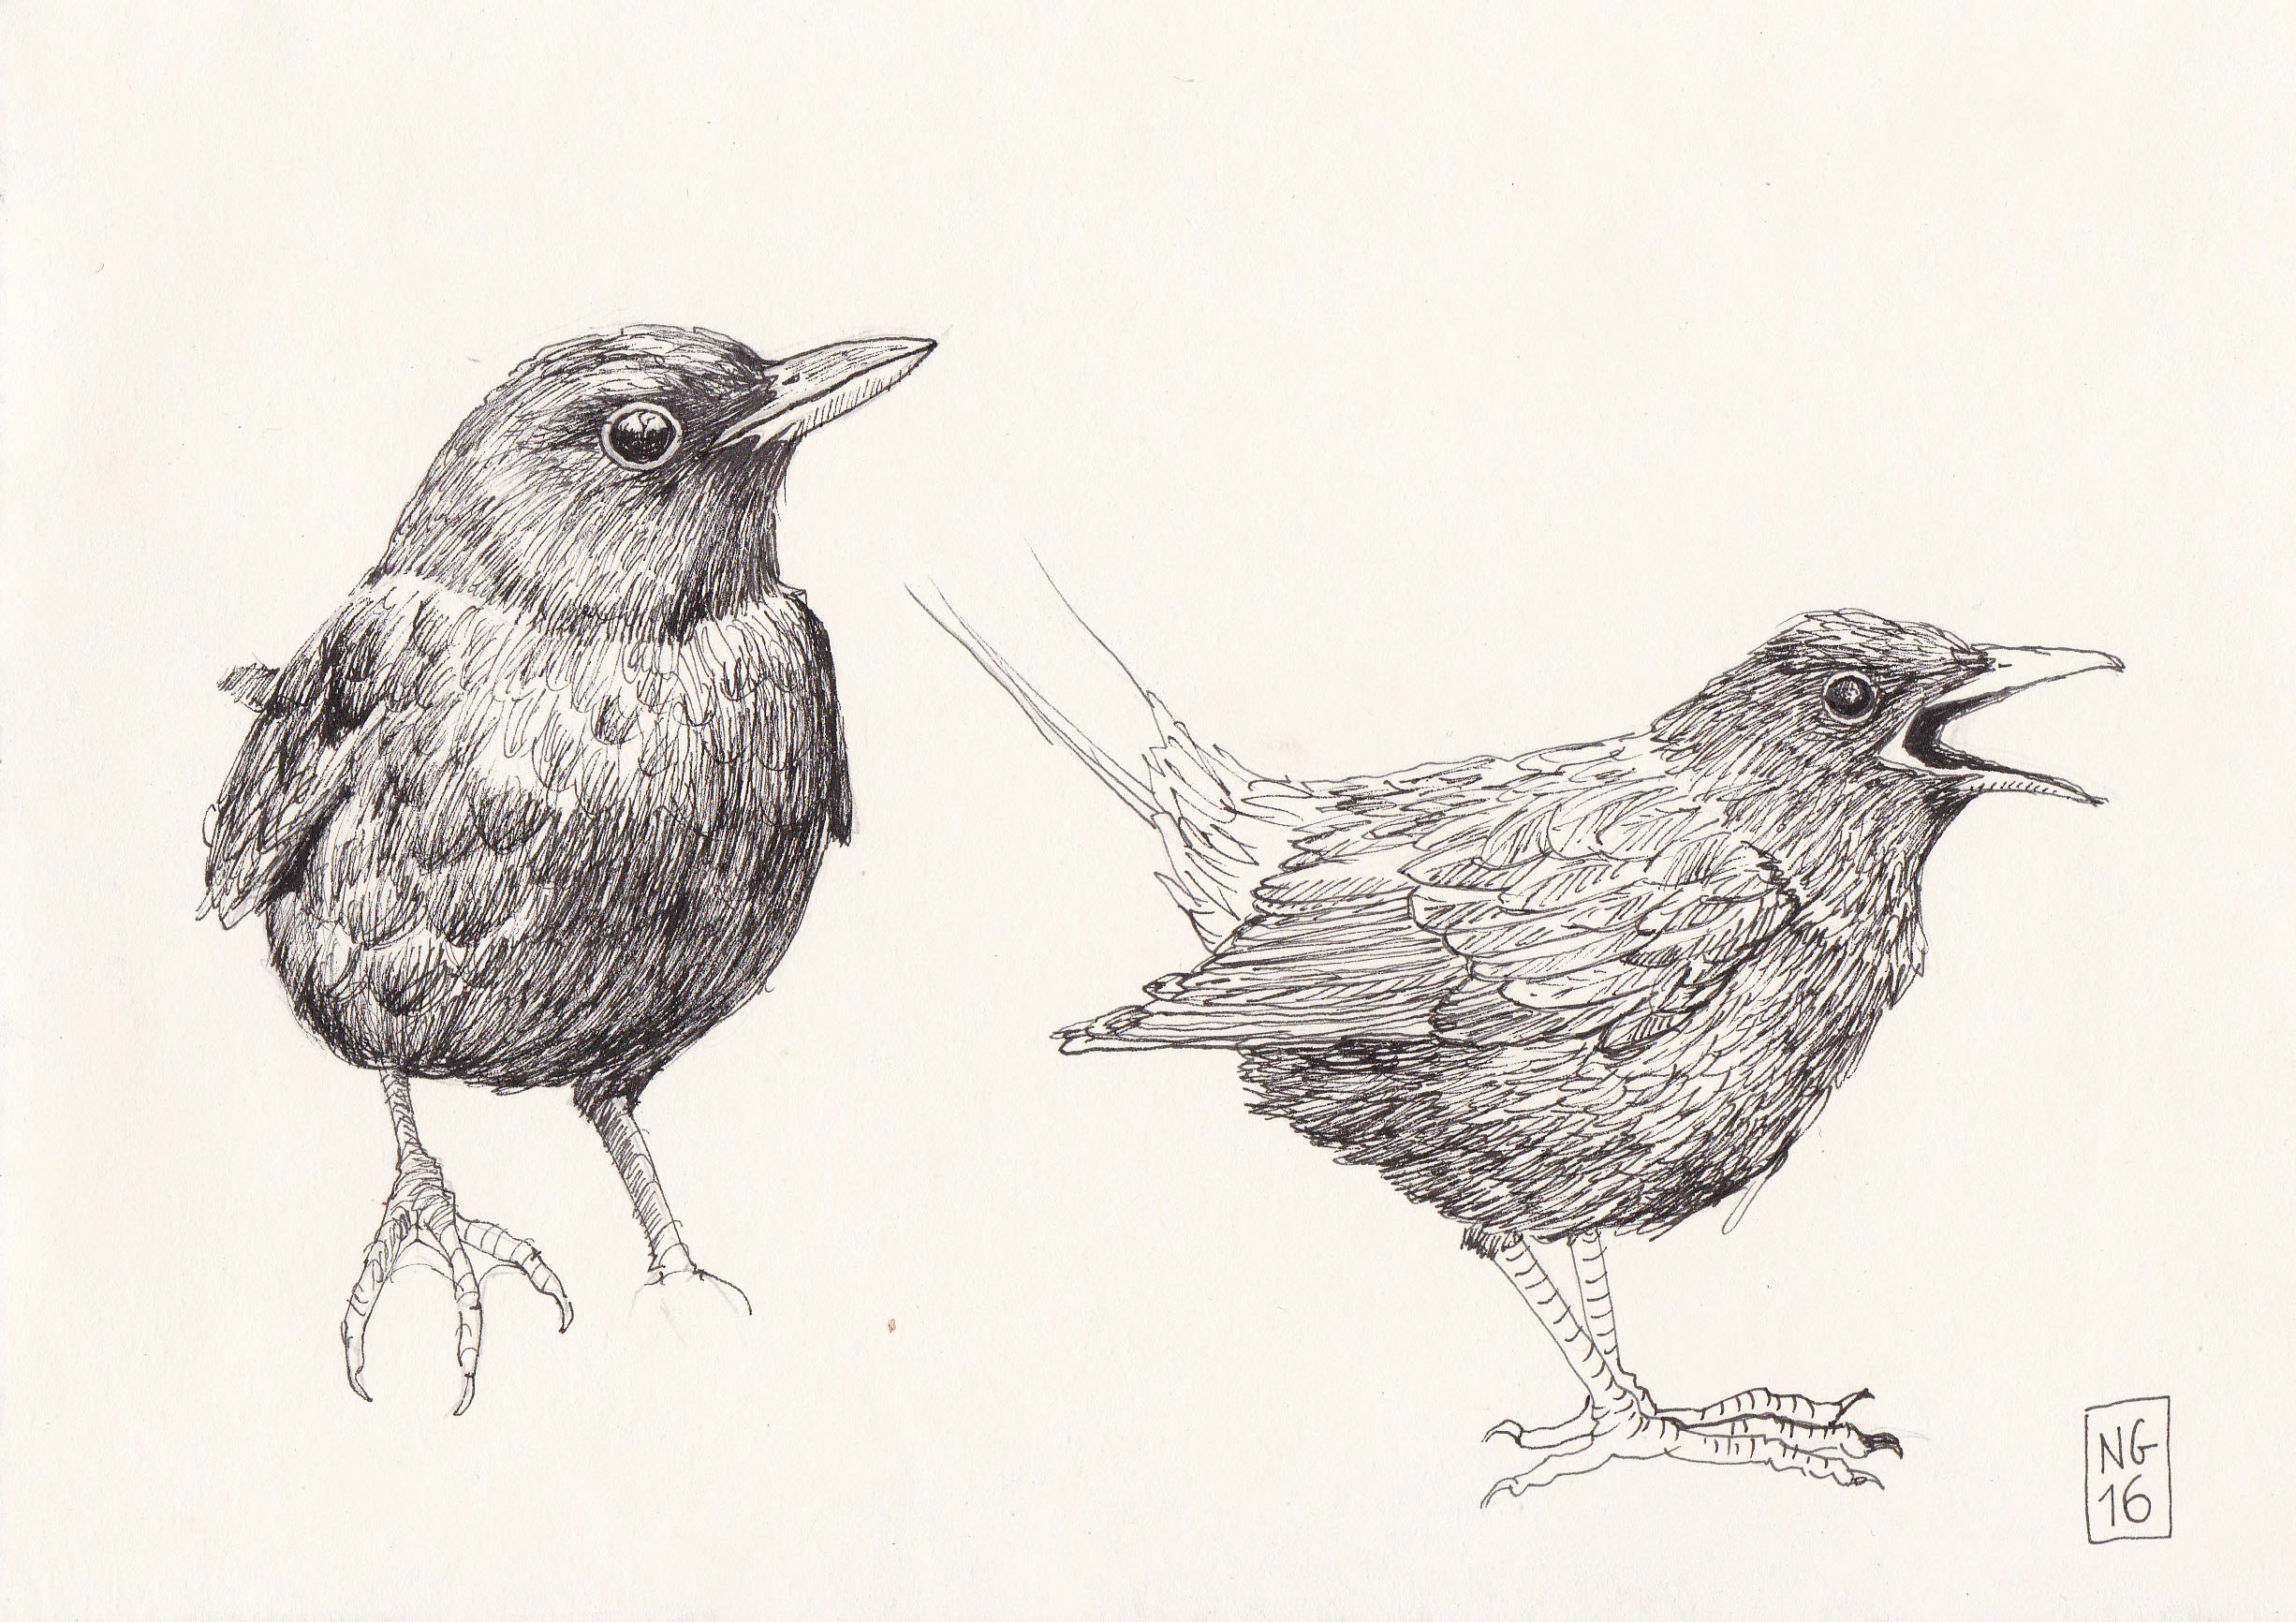 Blackbird sketches